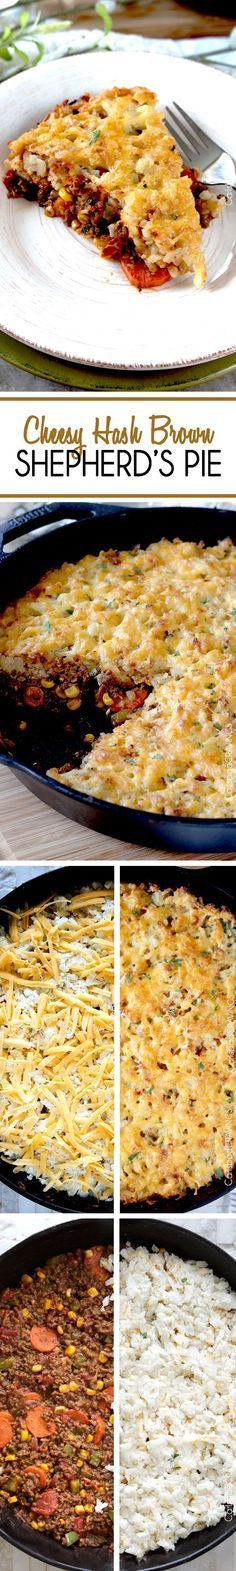 Cheesy Hashbrown Shepherd's Pie ~ cheesy,crispy hash browns give way to beef, carrots, corn and green peppers smothered in a tomato spiked brown gravy | carlsbadcravings.com